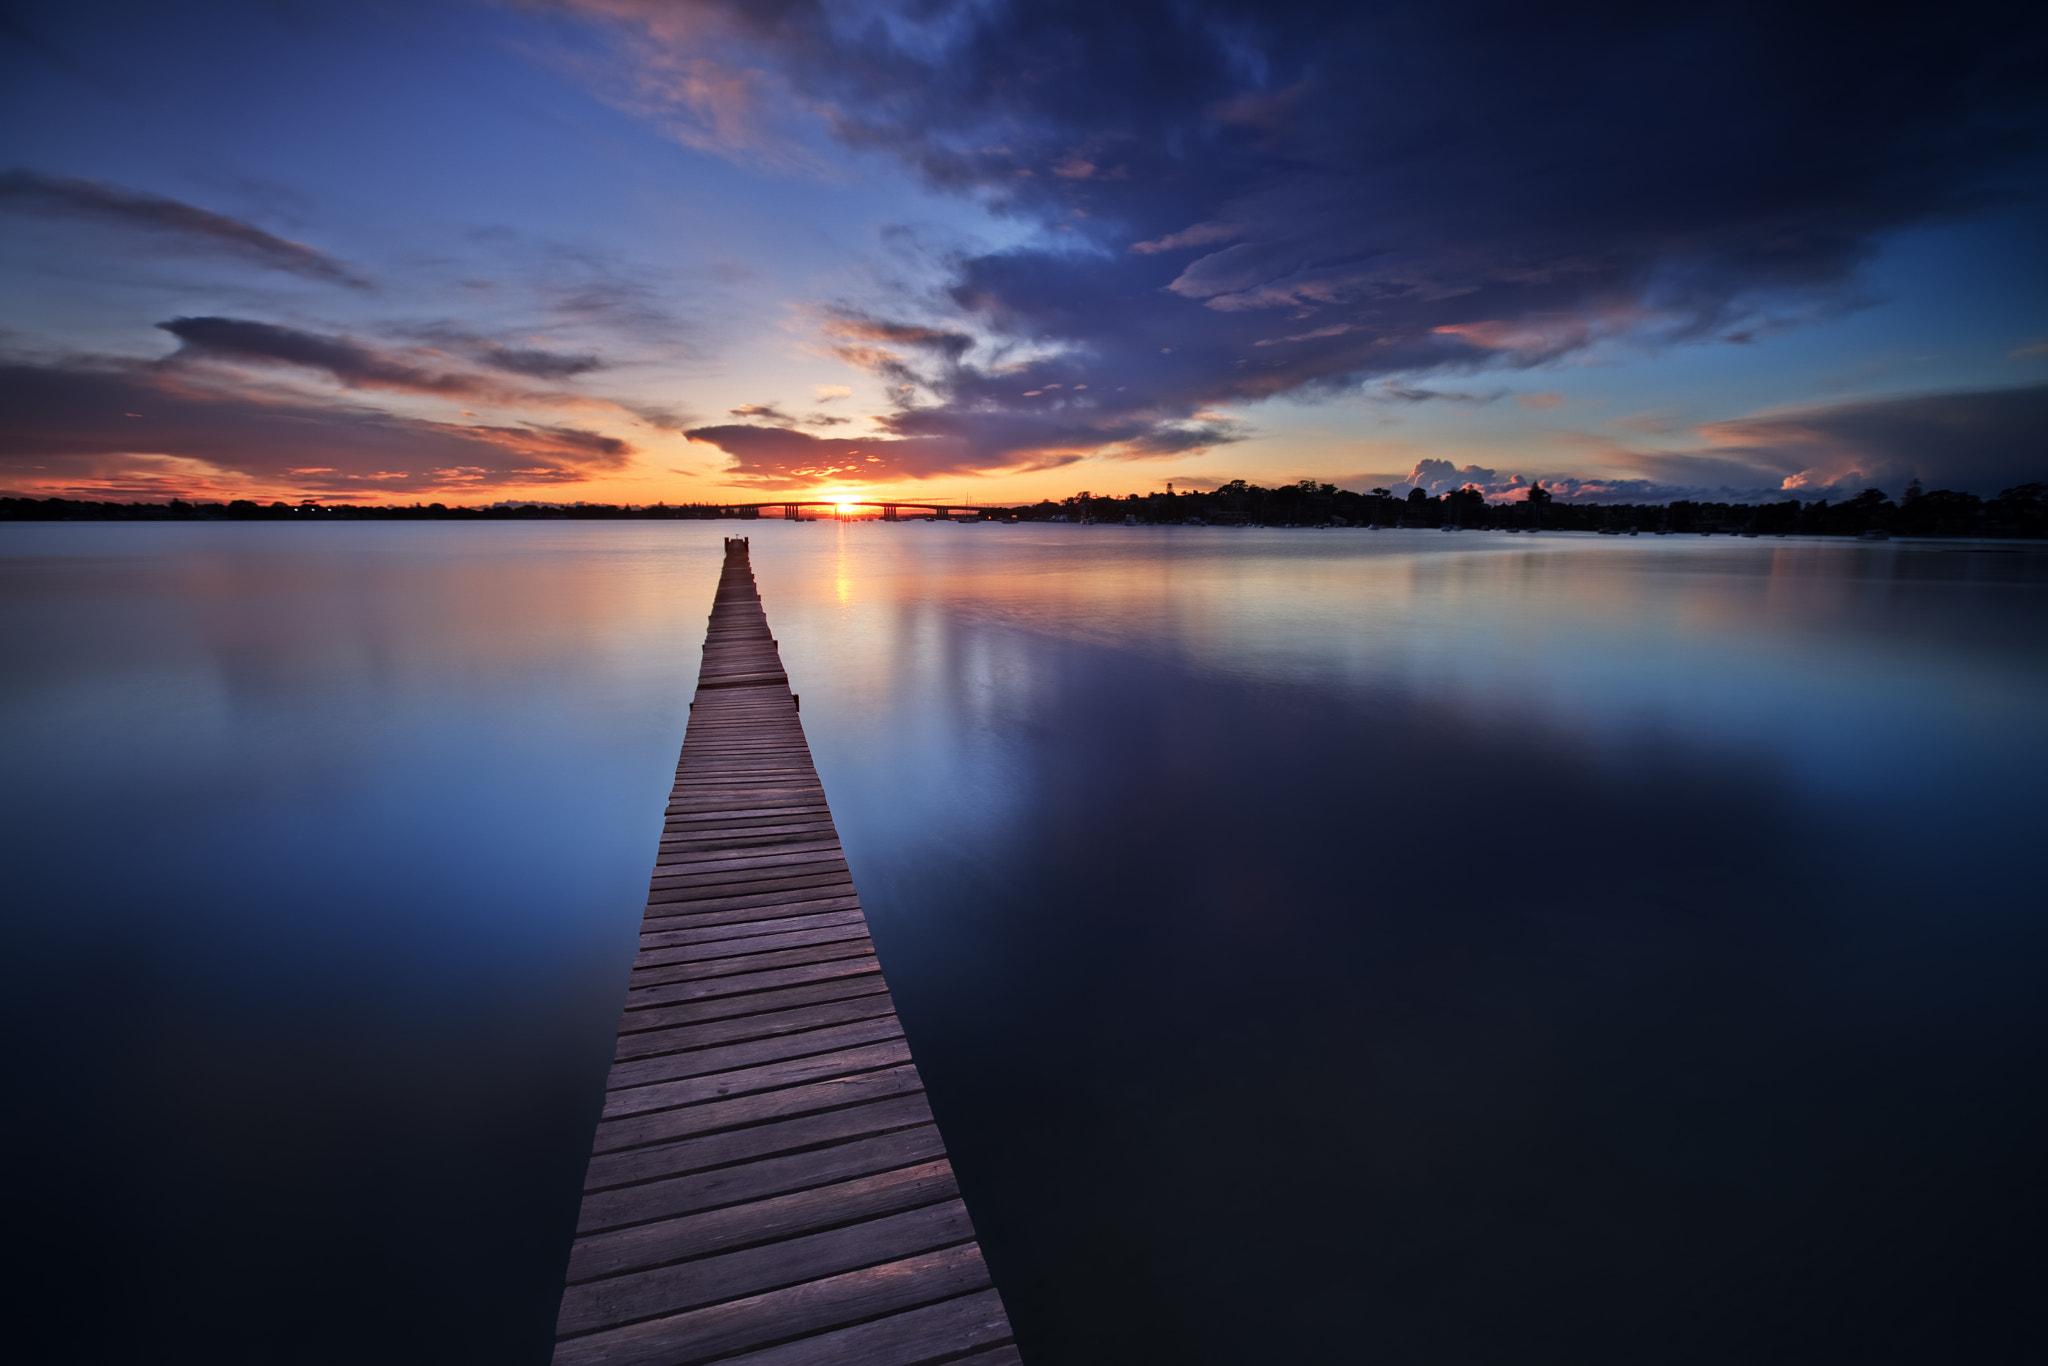 Photograph Sunrise over Holt's Point Jetty by Xenedis  on 500px